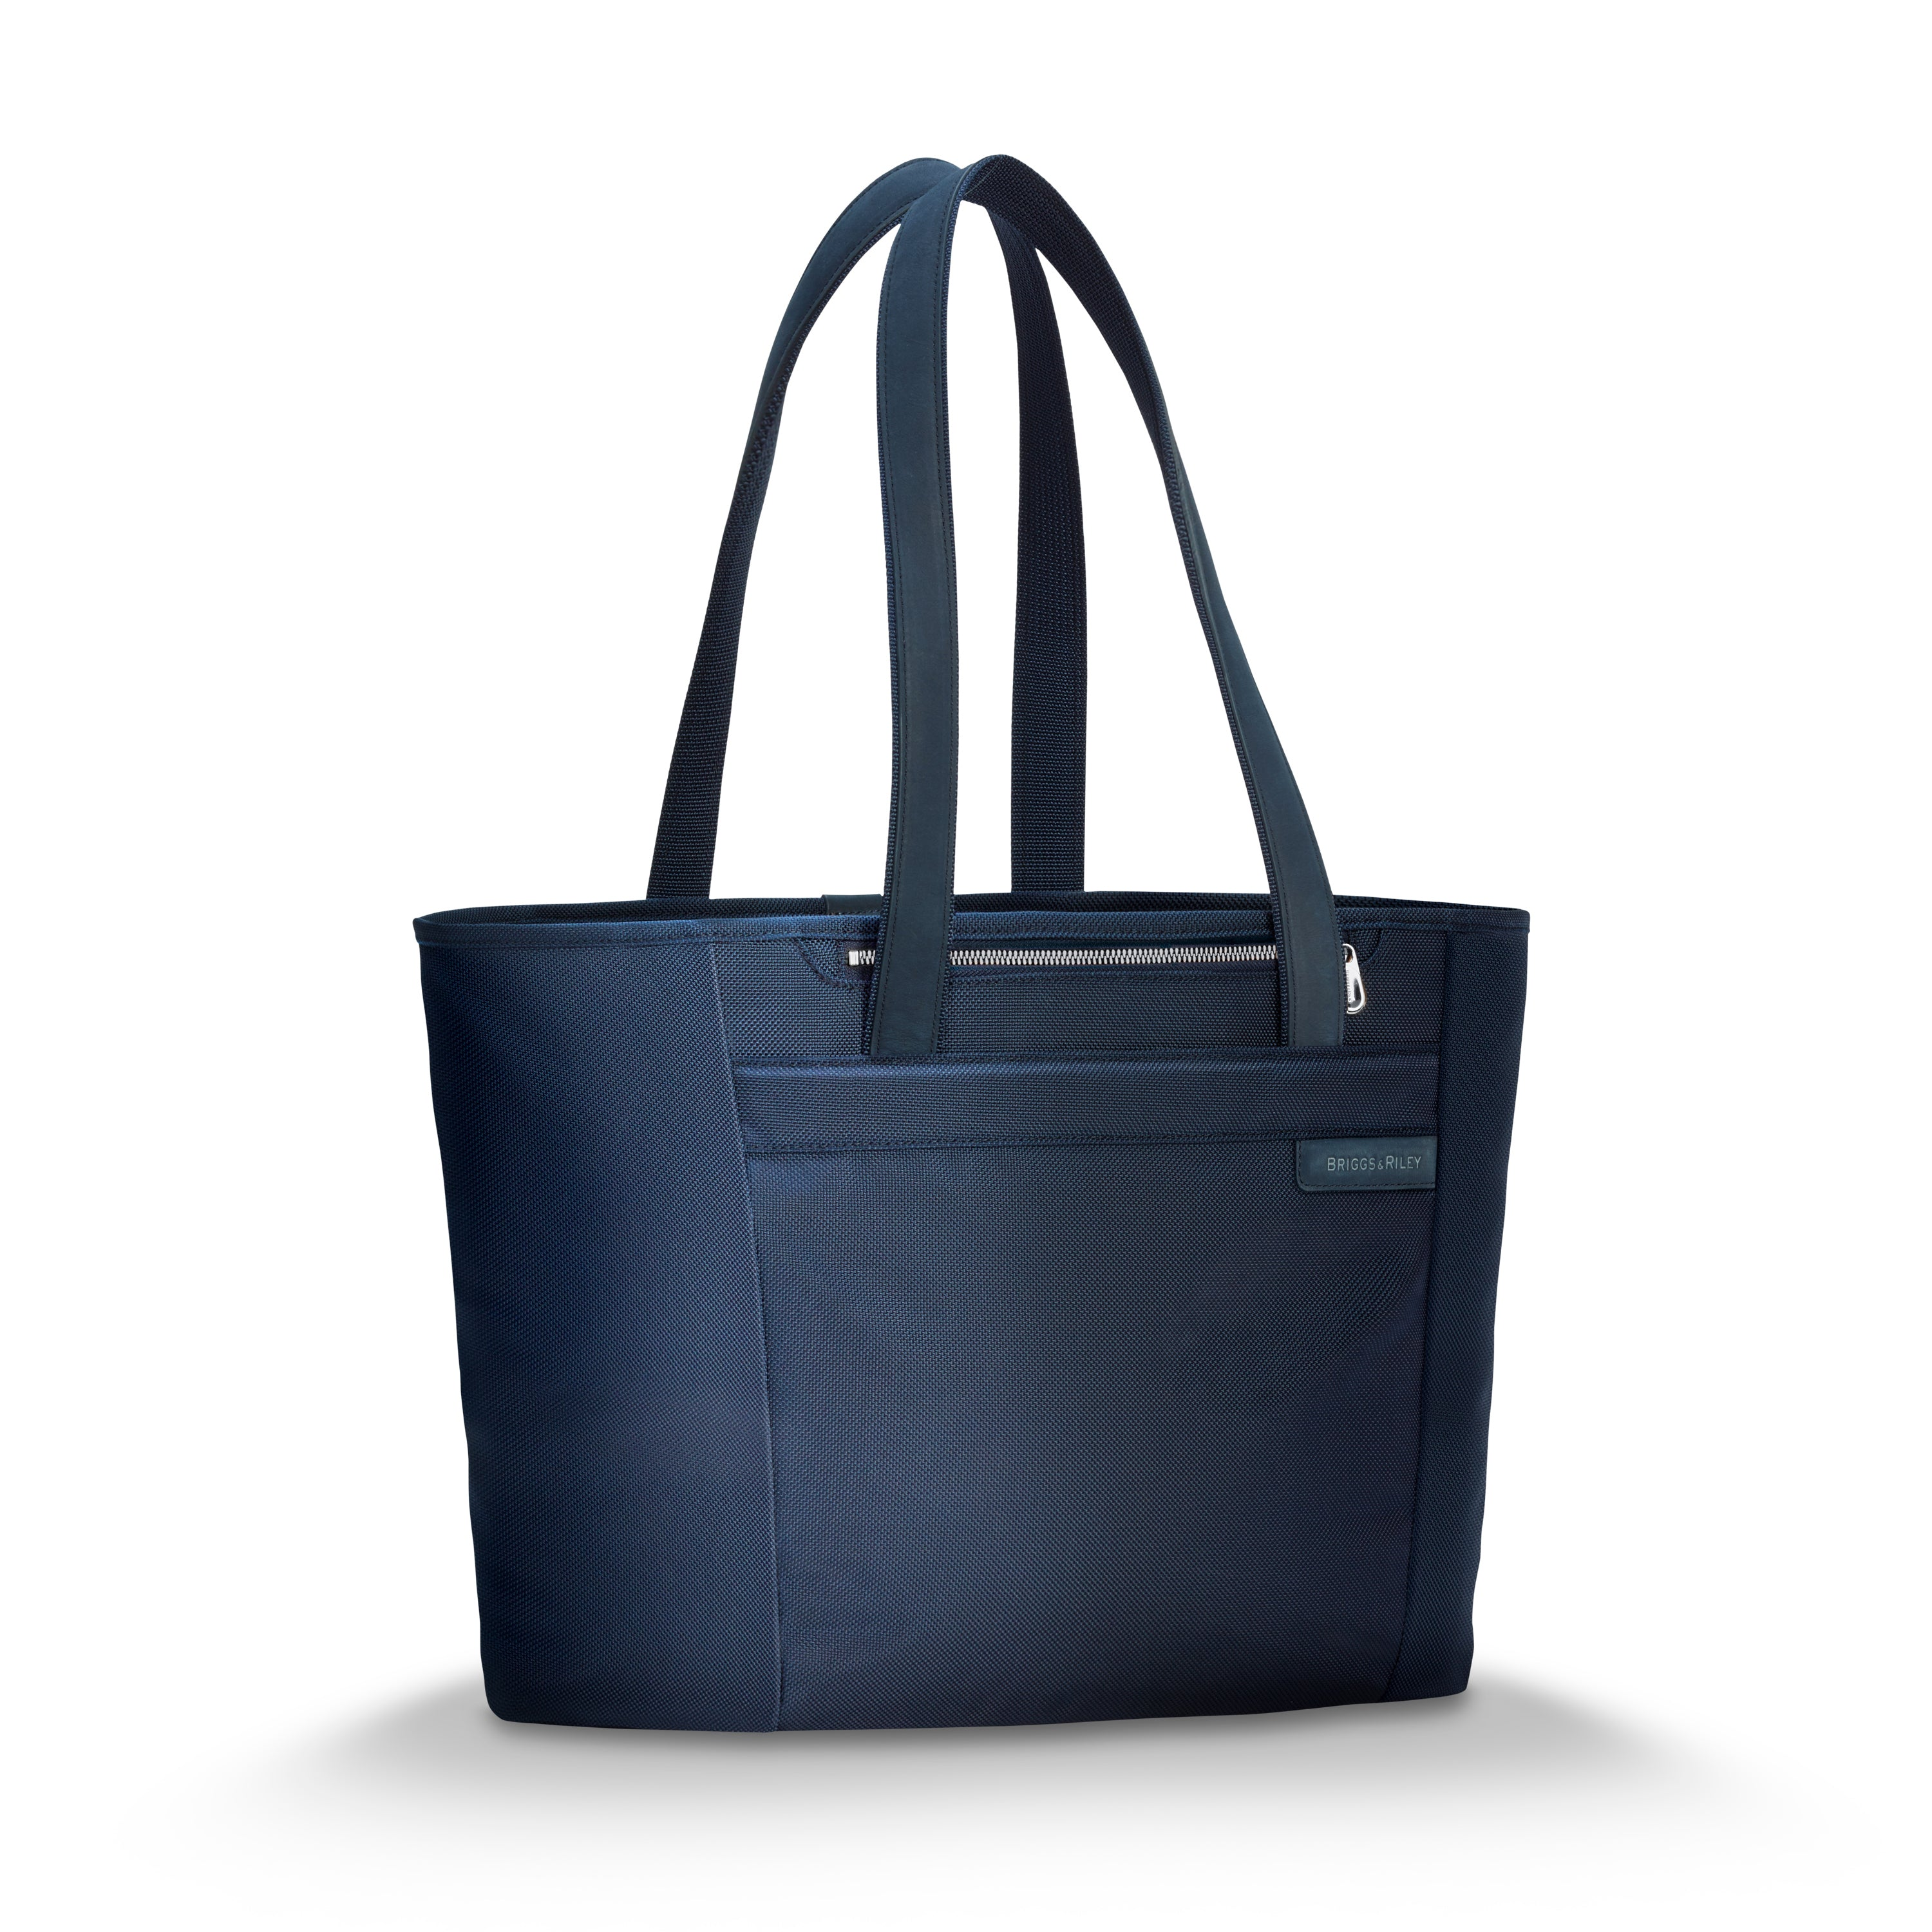 Briggs & Riley Baseline Large Shopping Tote - Navy Blue | MEGO